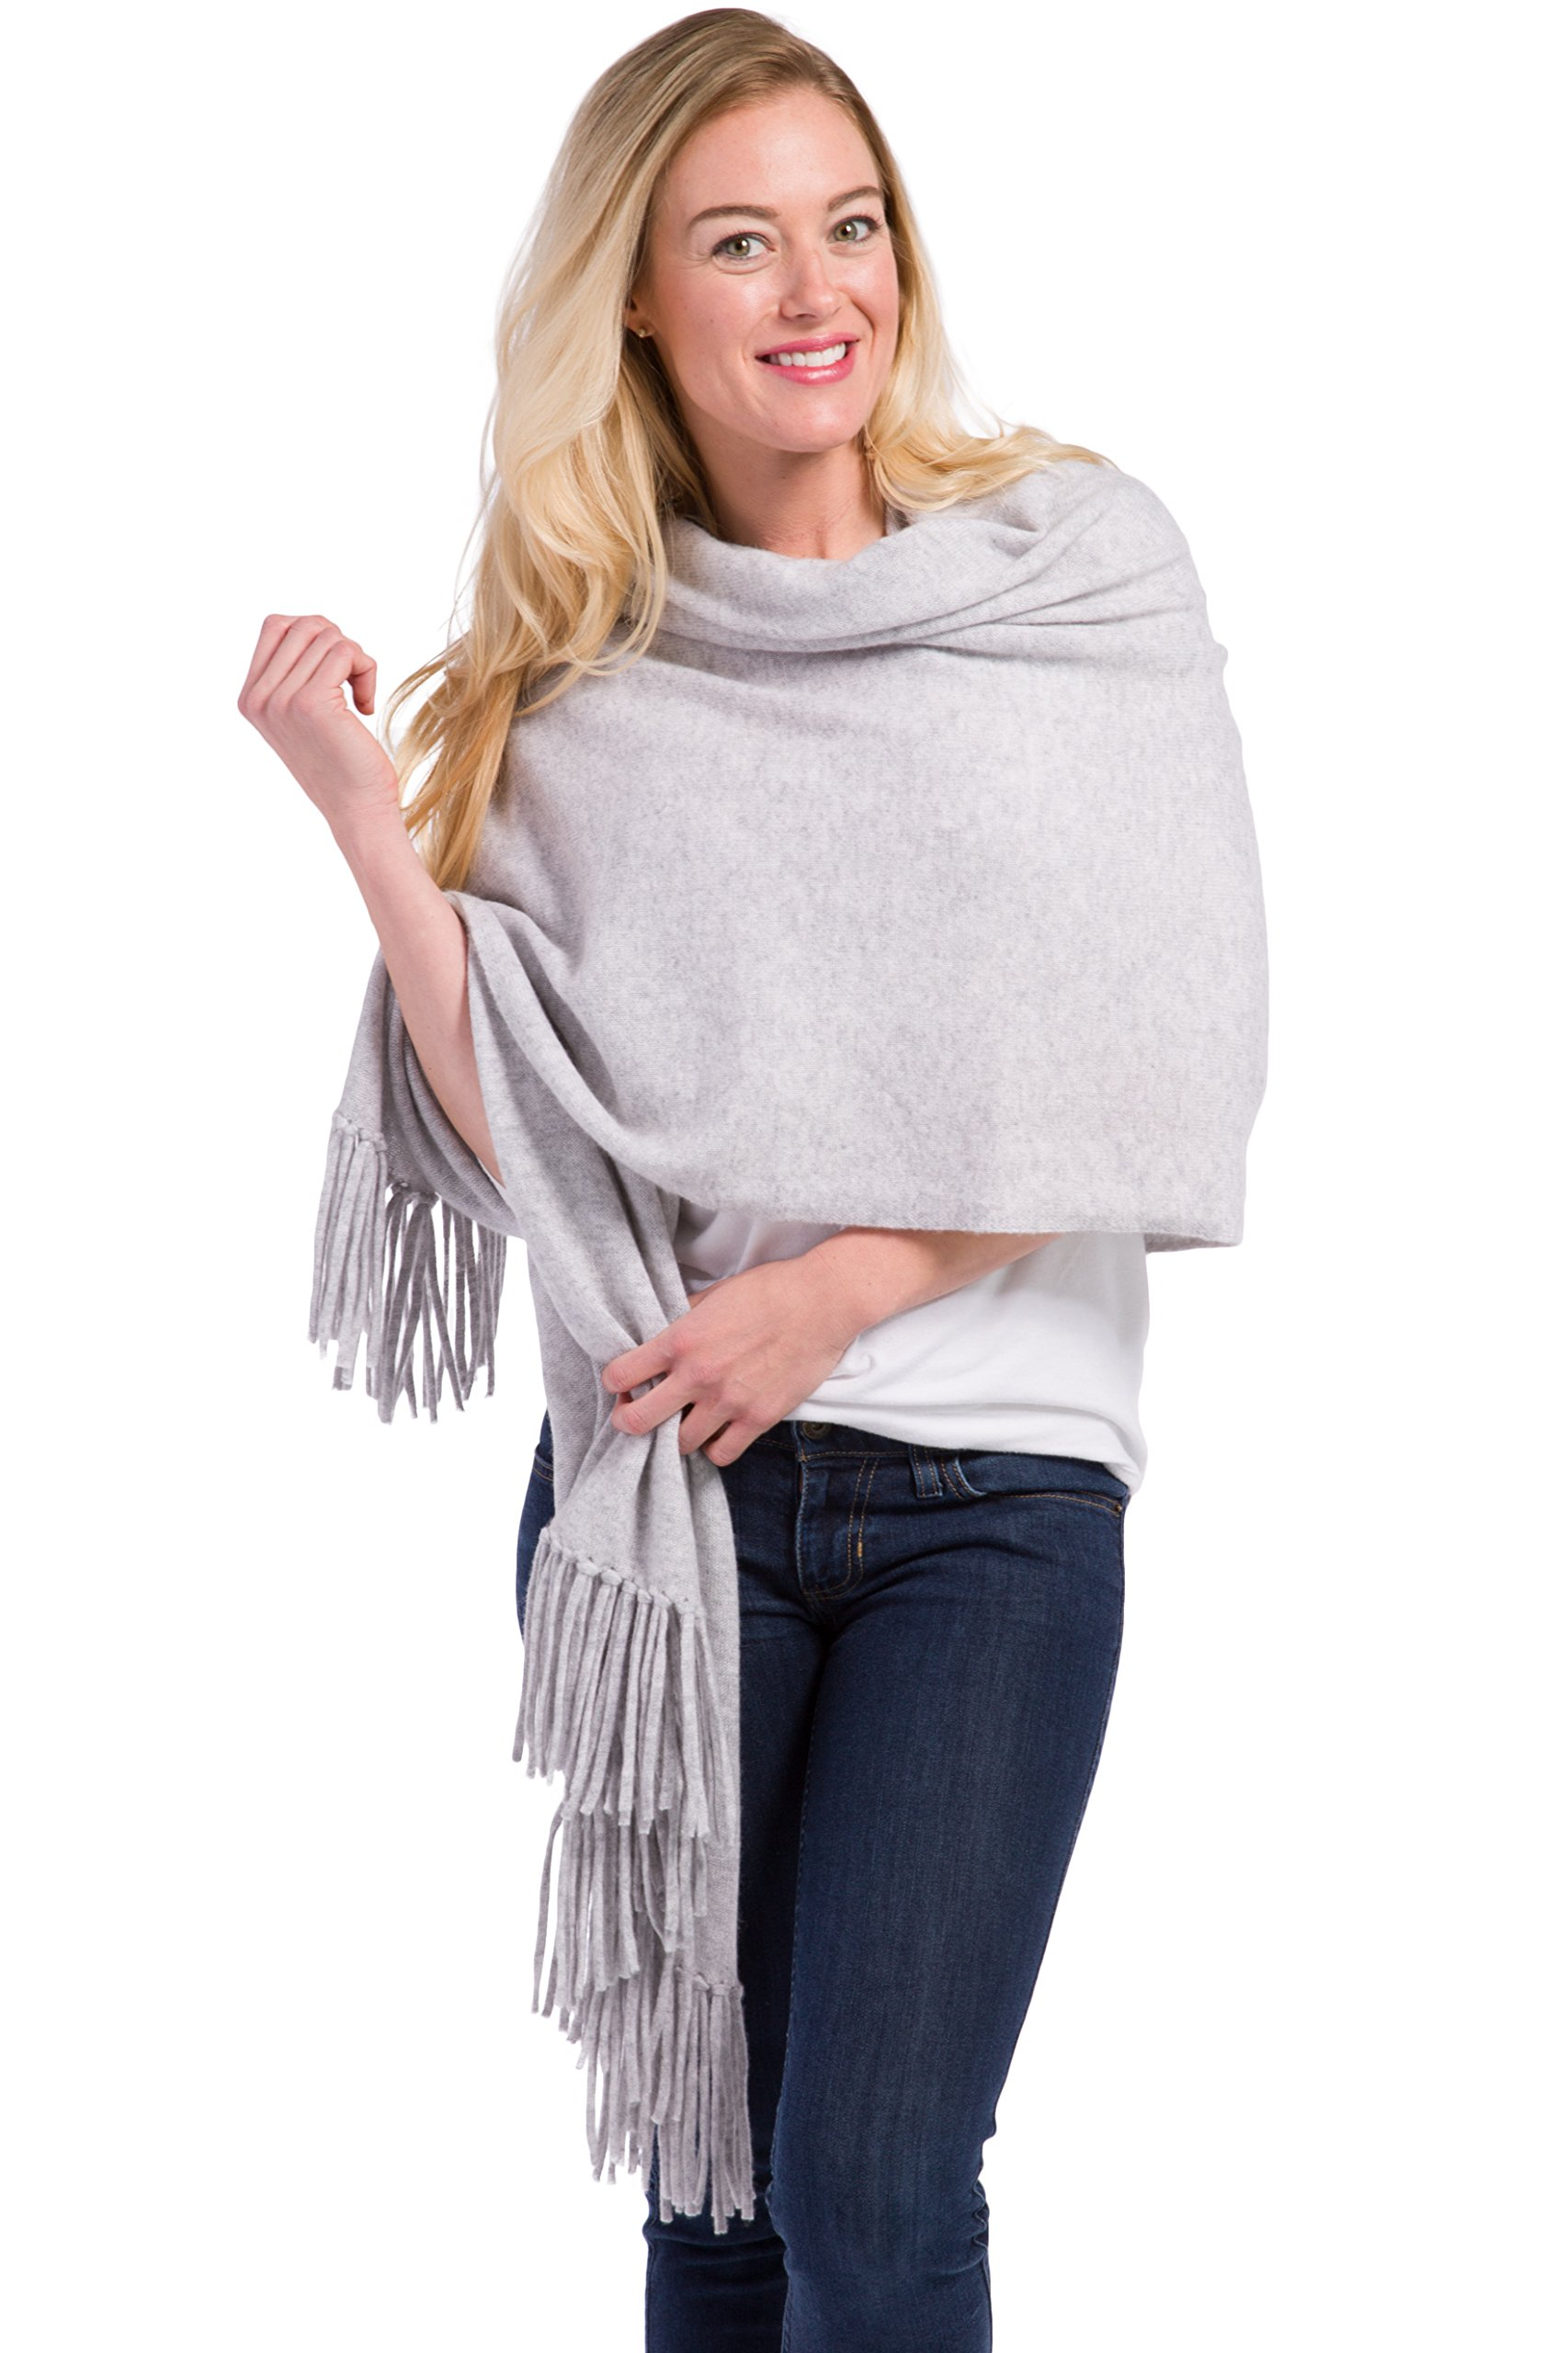 Fishers Finery Women's 100% Cashmere Knit Wrap Shawl with Fringe; (Light Gray) by Fishers Finery